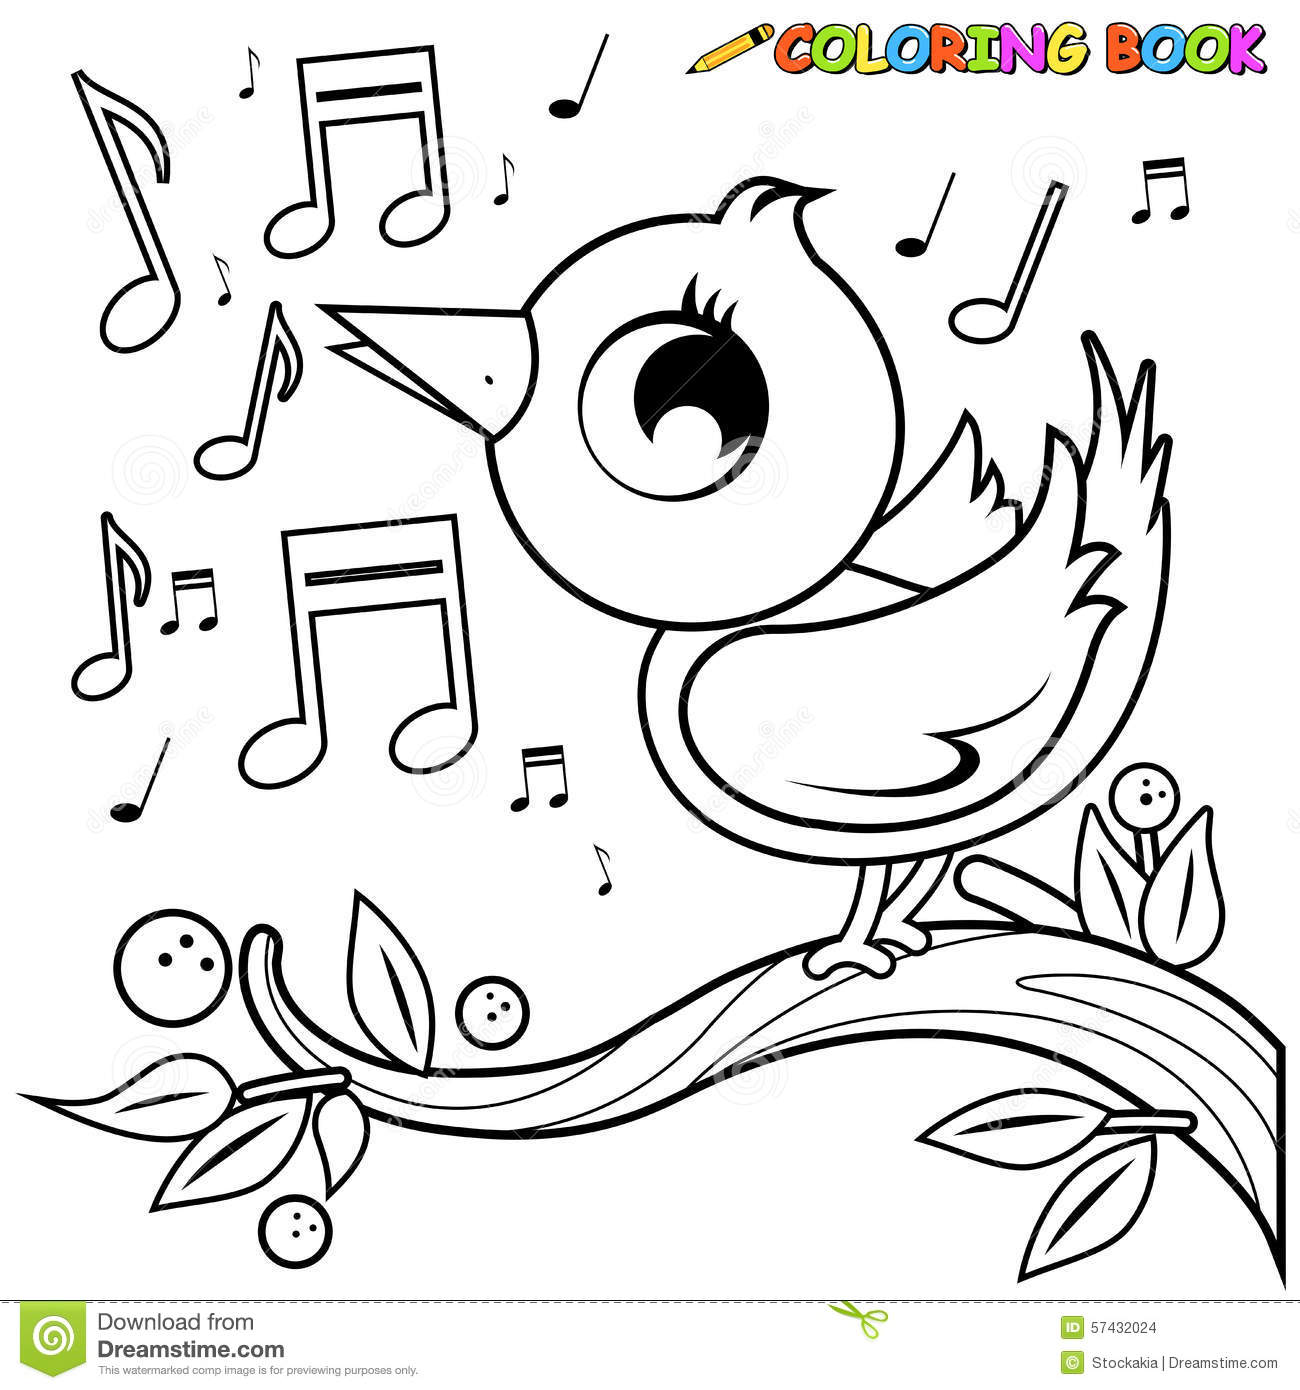 Coloring Pages Singer Coloring Pages singing coloring pages futpal com bird on branch page